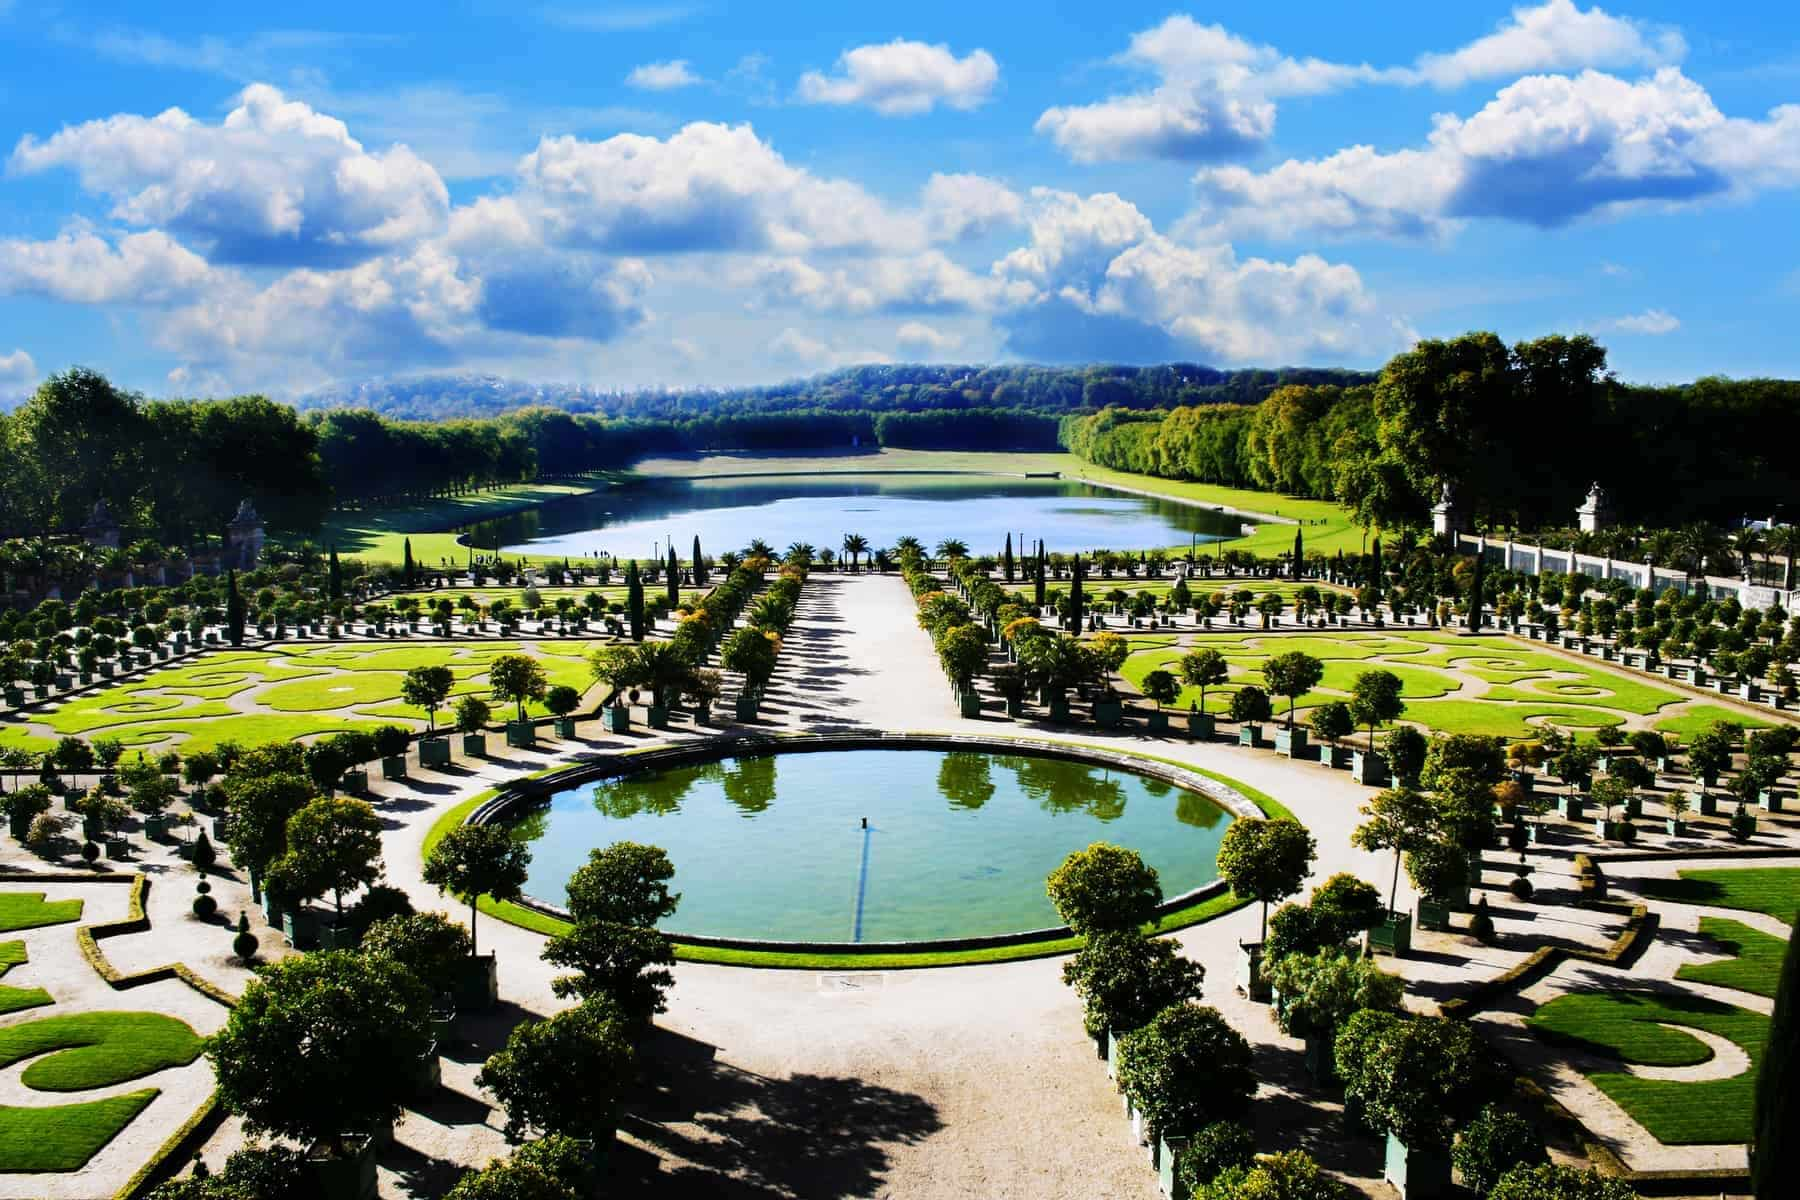 Versailles, royal garden in Paris